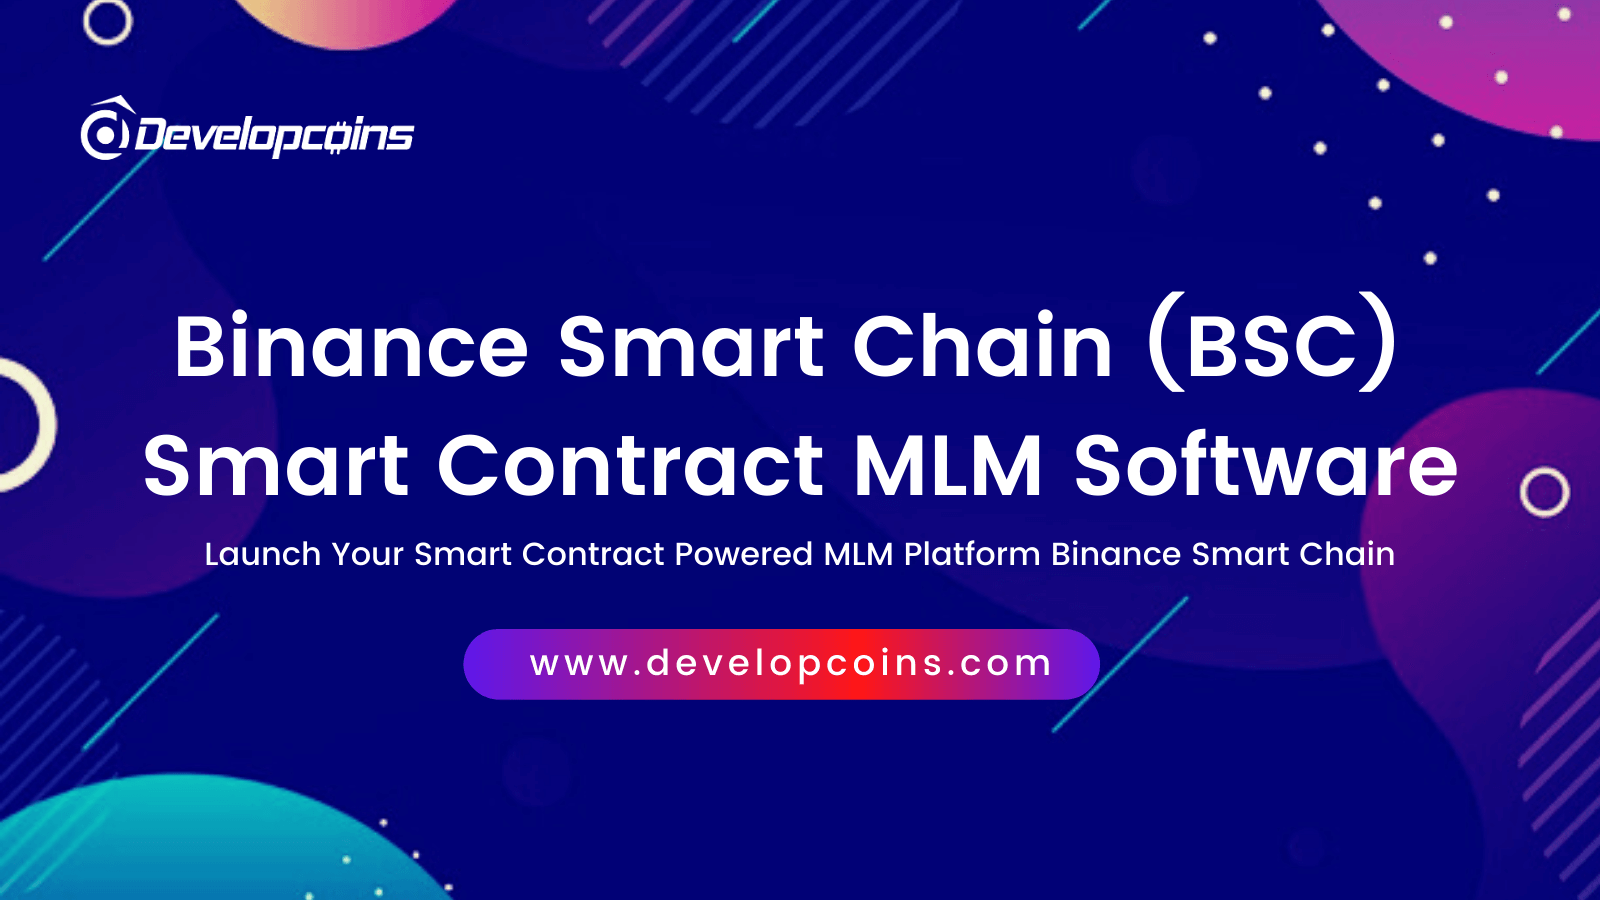 Binance Smart Chain (BSC) Smart Contract MLM Software Development Company